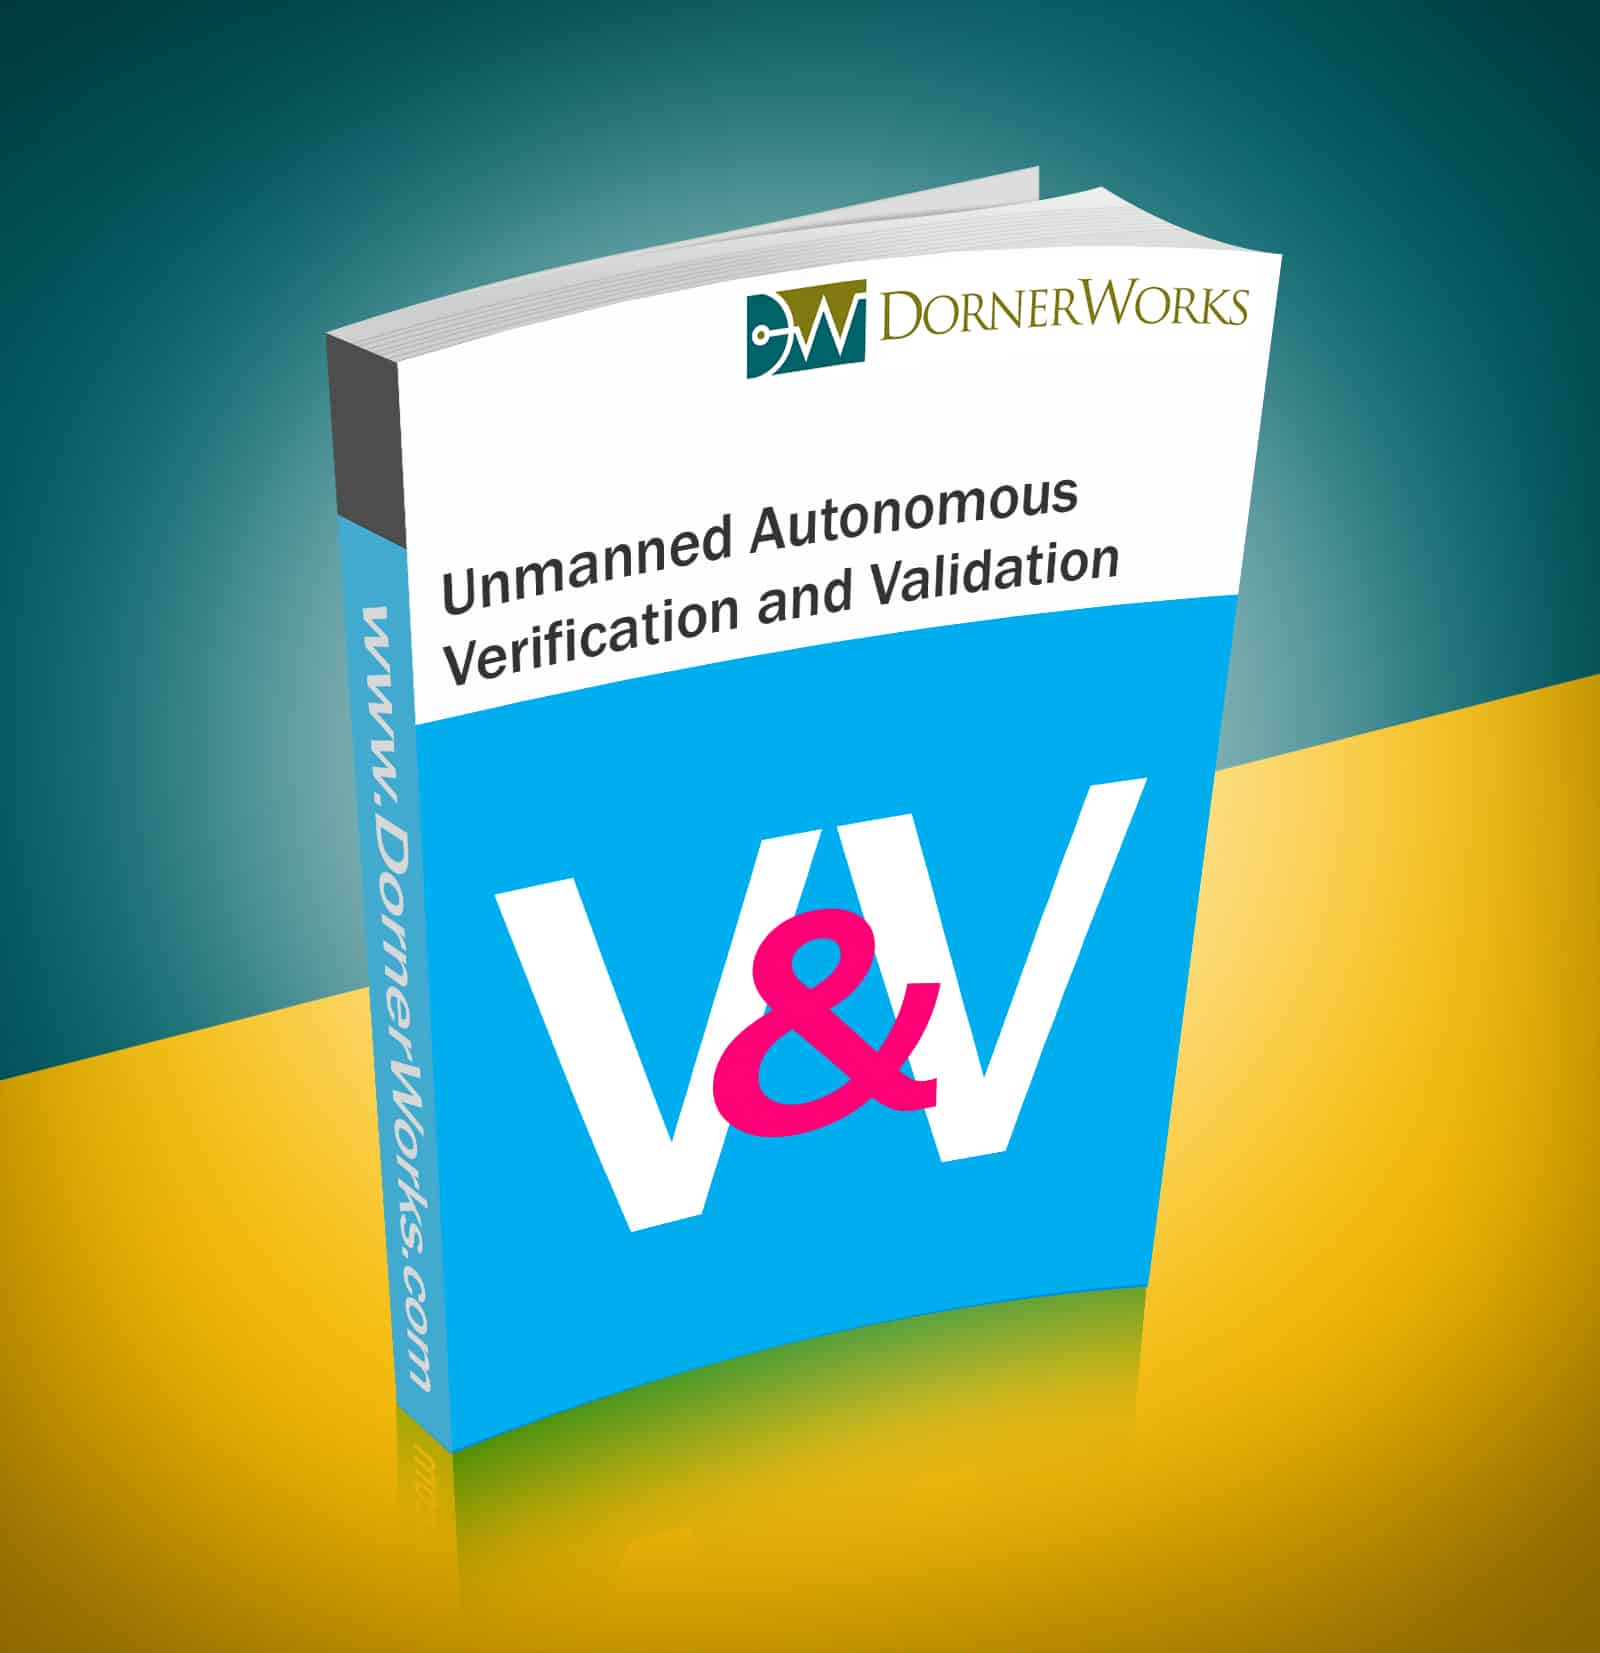 Unmanned Autonomous Verification and Validation